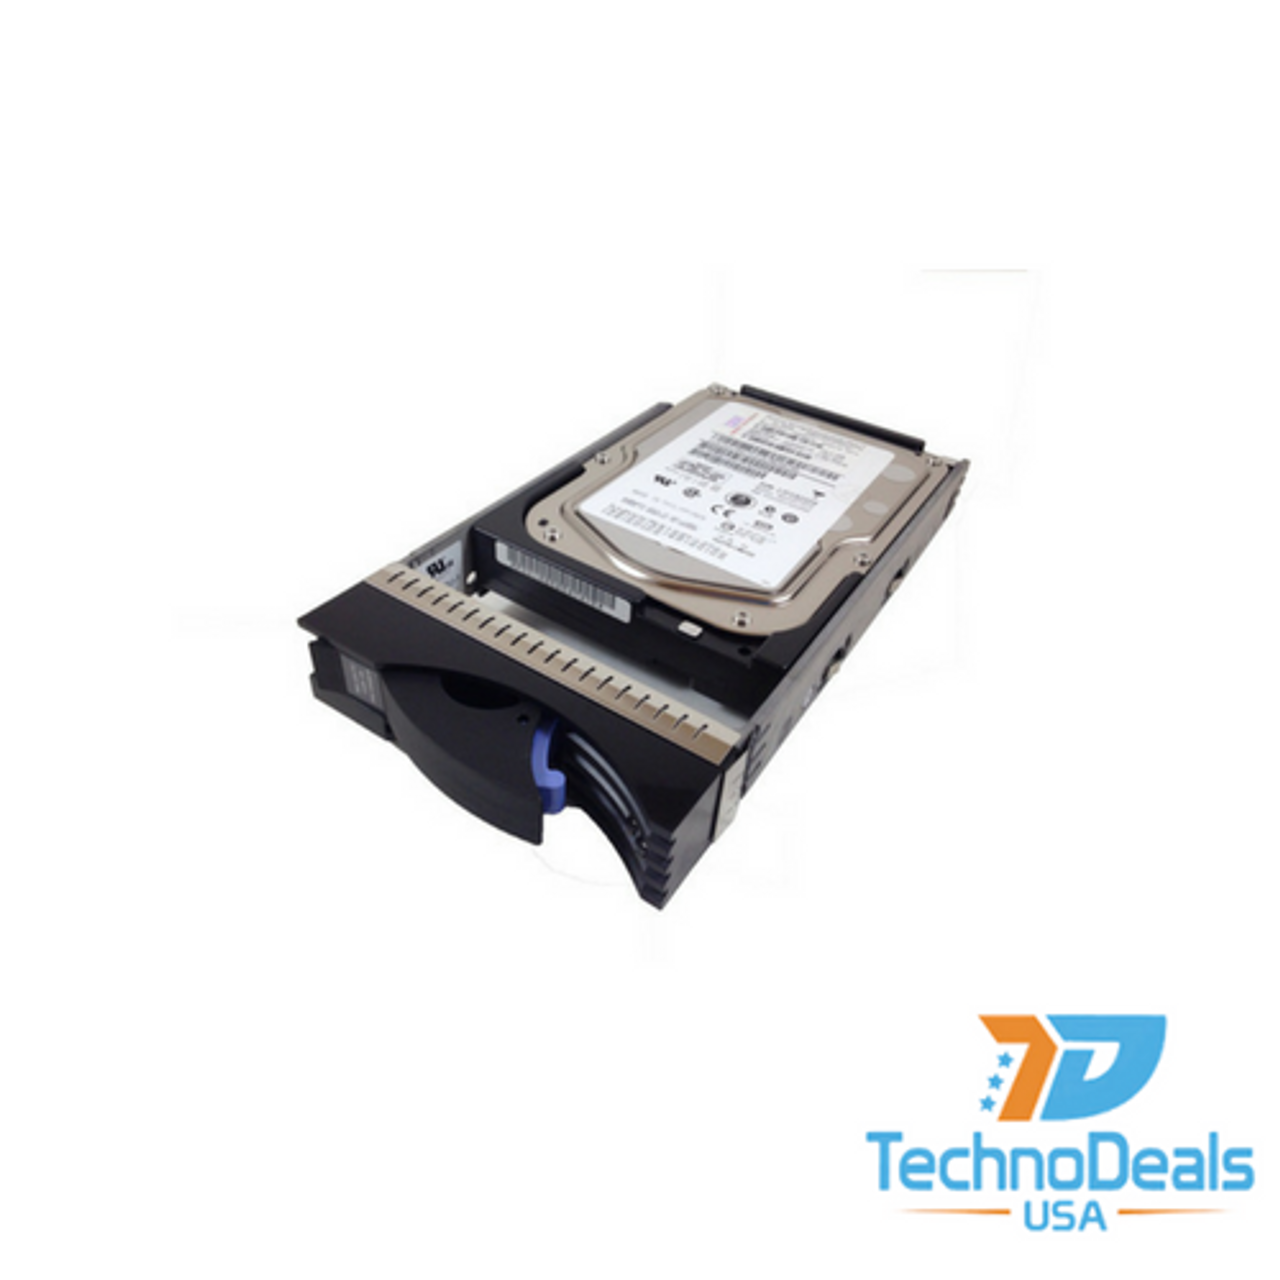 IBM 42D0767 42D0768 42D0771 2 TB 7200 RPM 35 Inch 16MB Buffer SAS 6Gb S Hot Swap Internal Hard Drive With Tray